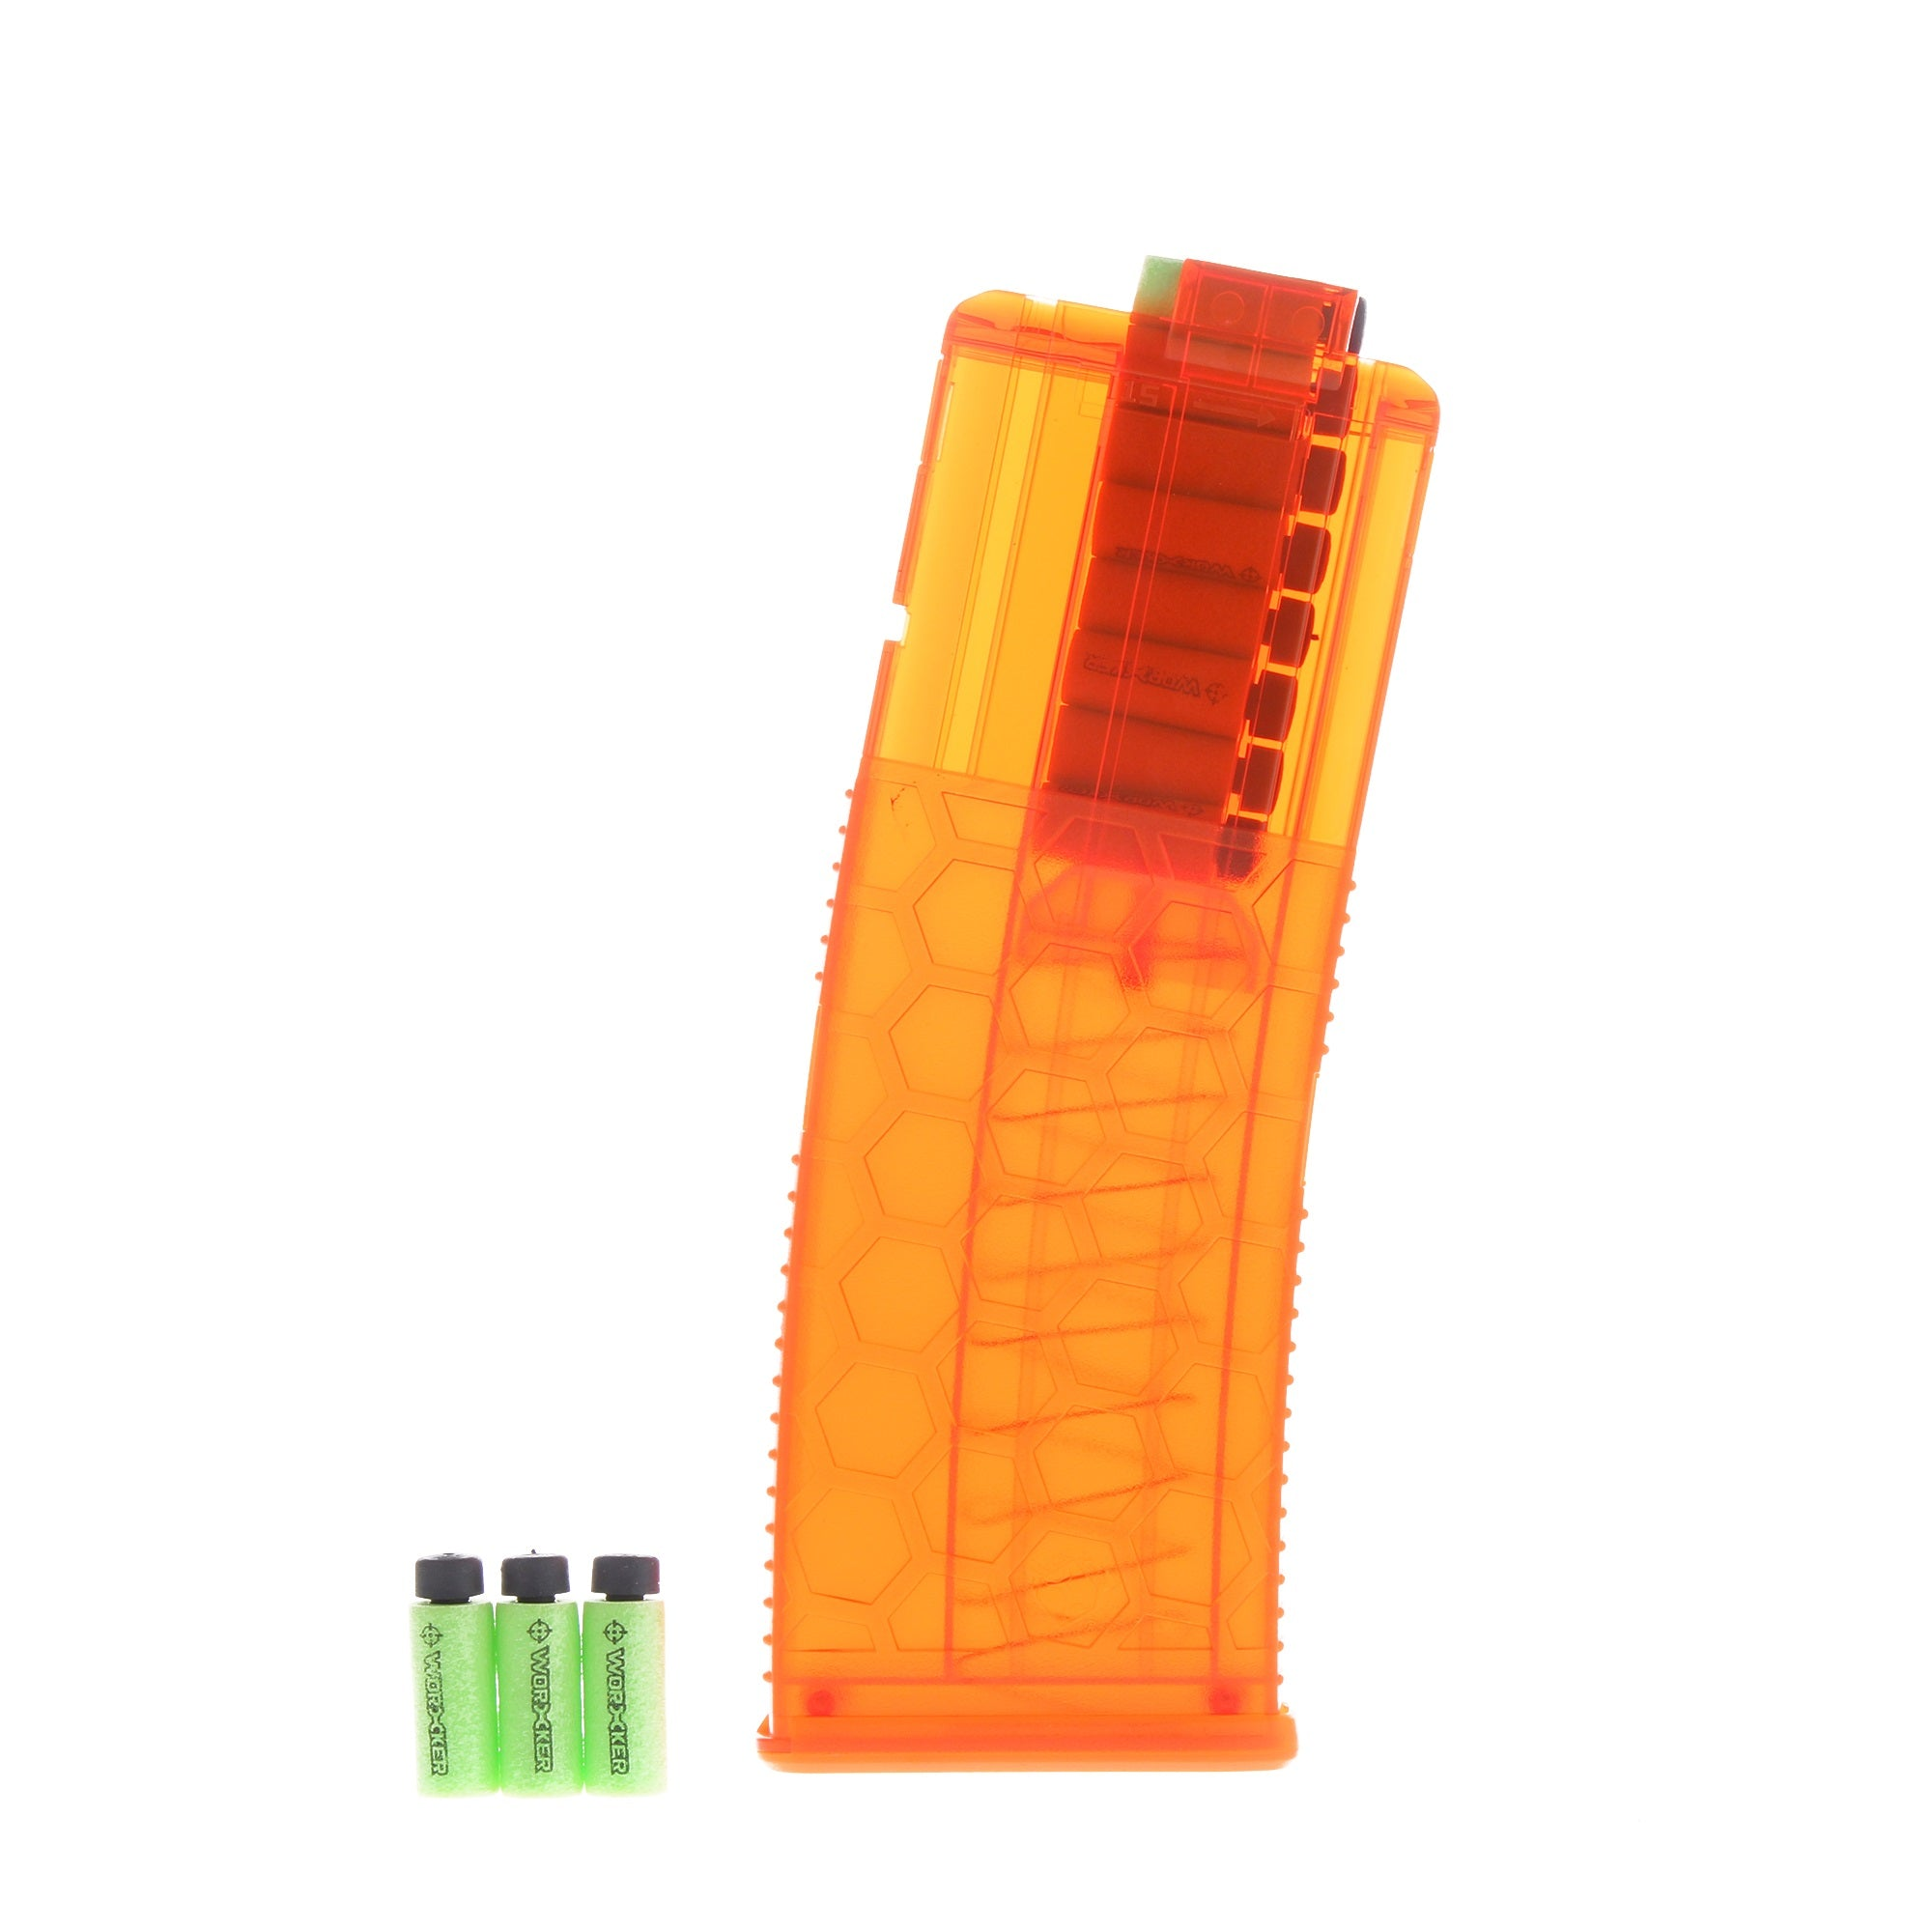 JGCWORKER Hexagon HoneyComb 15 Short Darts Clip Magazine for Nerf Blaster - Nerf Mod Kits -Worker Mod Kits